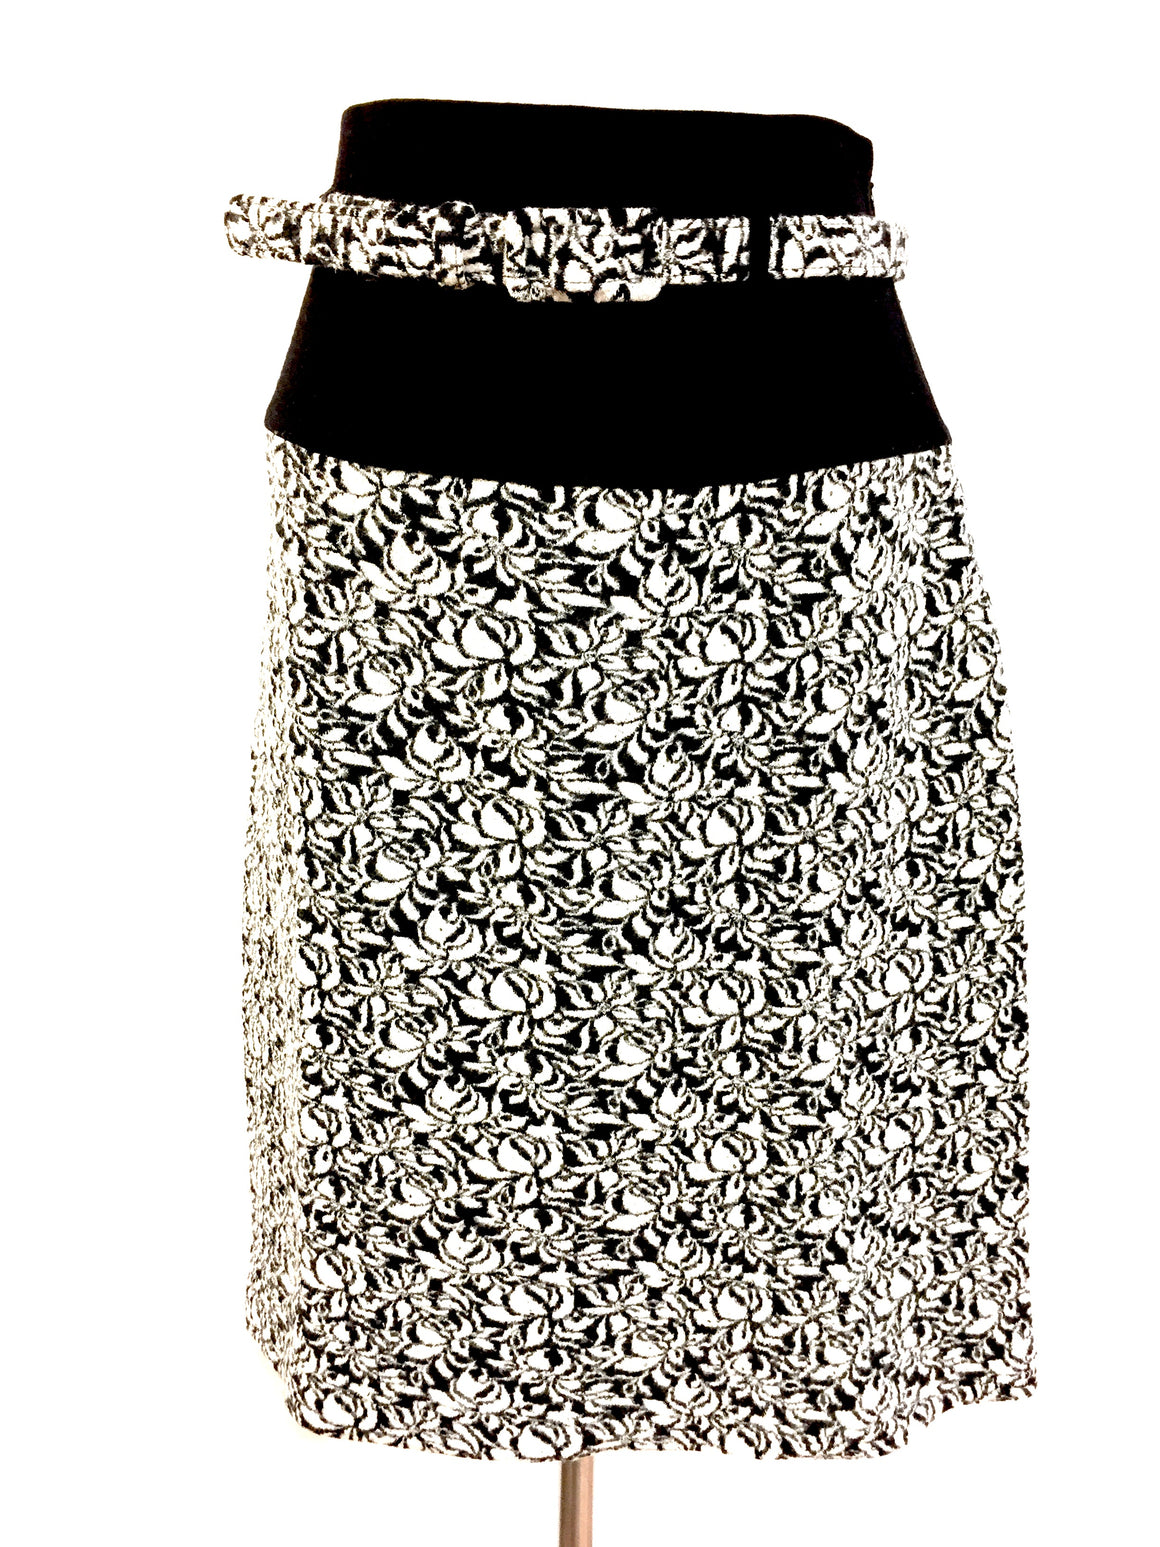 bisbiz.com AGNES B Black & White Floral-Patterned Wool-Blend Hi Waist Knit Skirt/Belt Size: EU3 / US L - Bis Luxury Resale